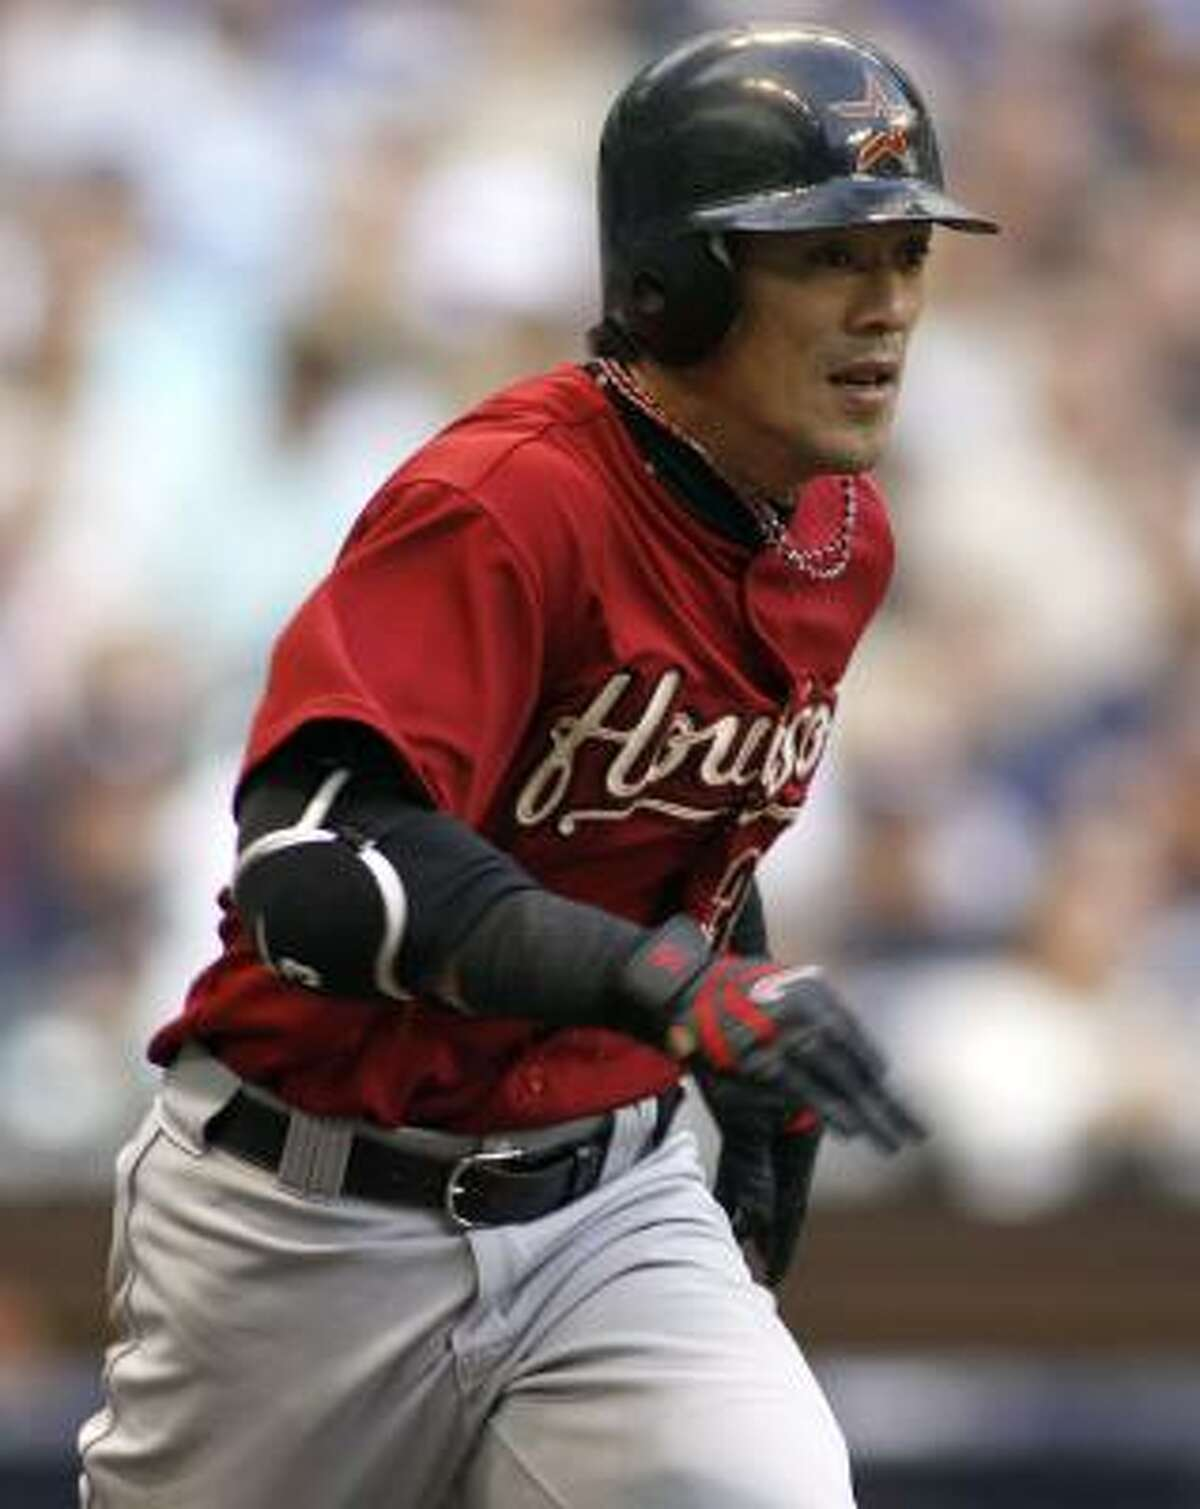 Kaz Matsui runs to first base after connecting on career hit number 2,000 during the third inning Saturday against the Brewers.